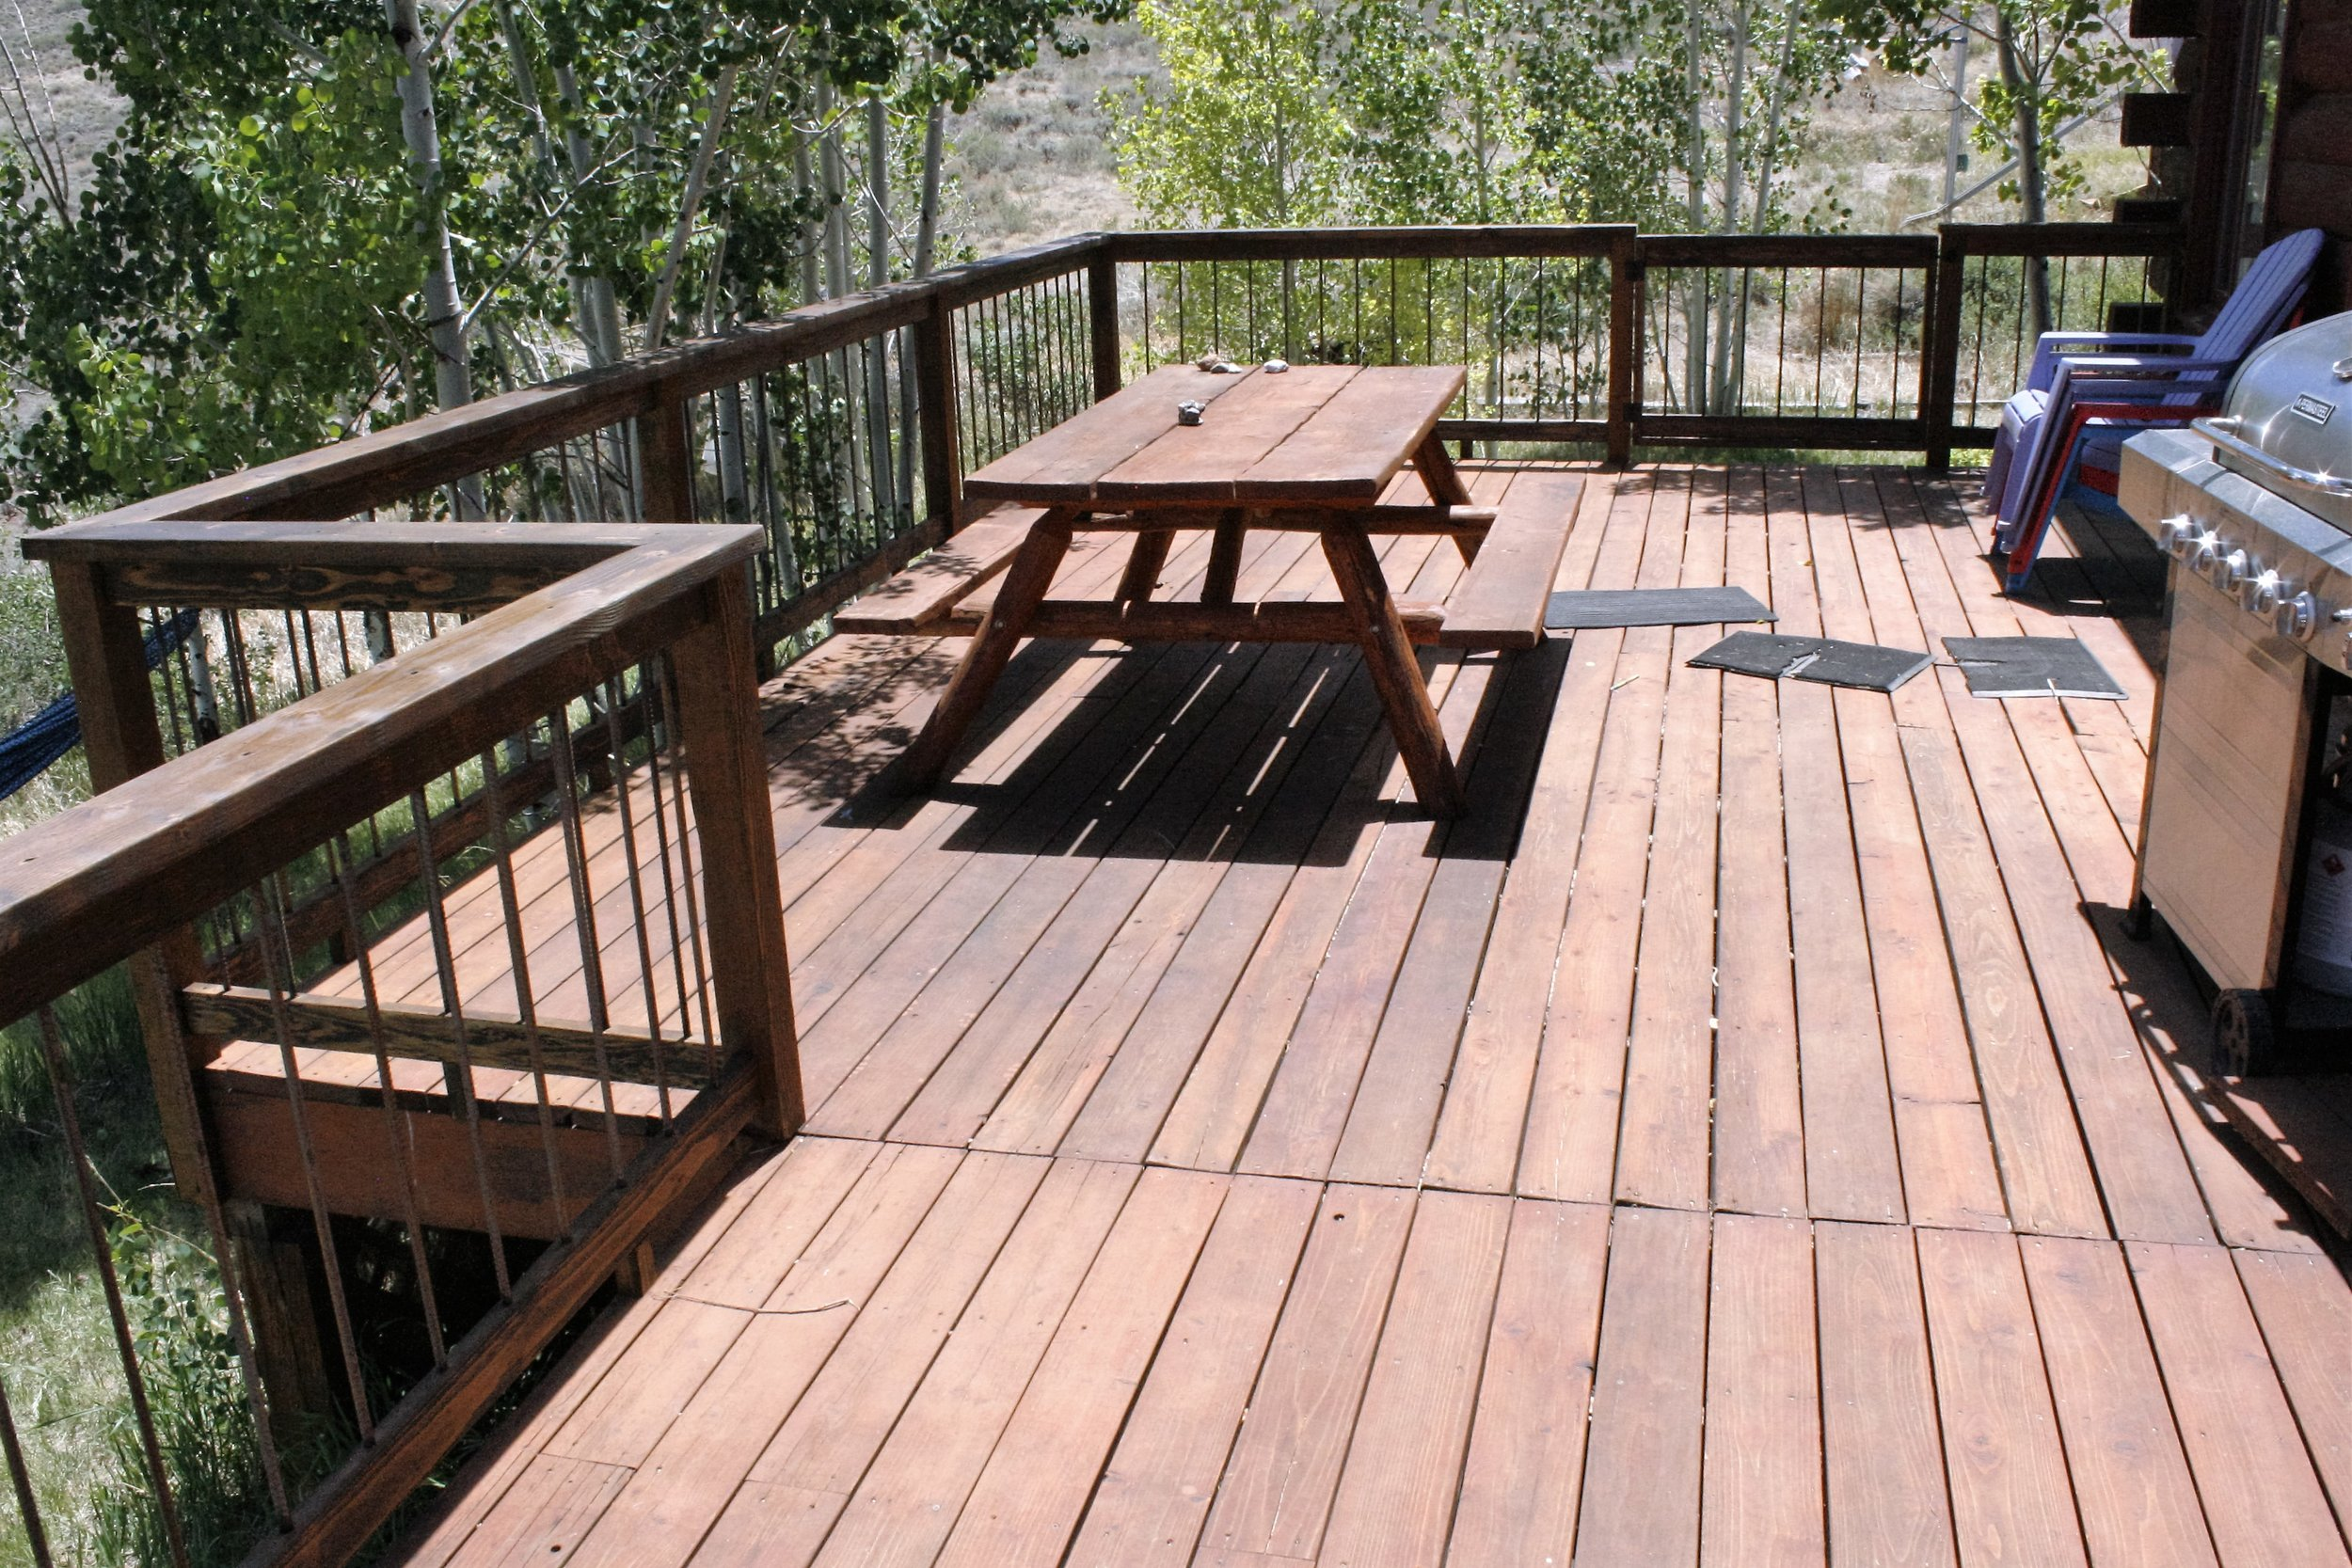 Deck railing with 1/2 inch rebar baulisters